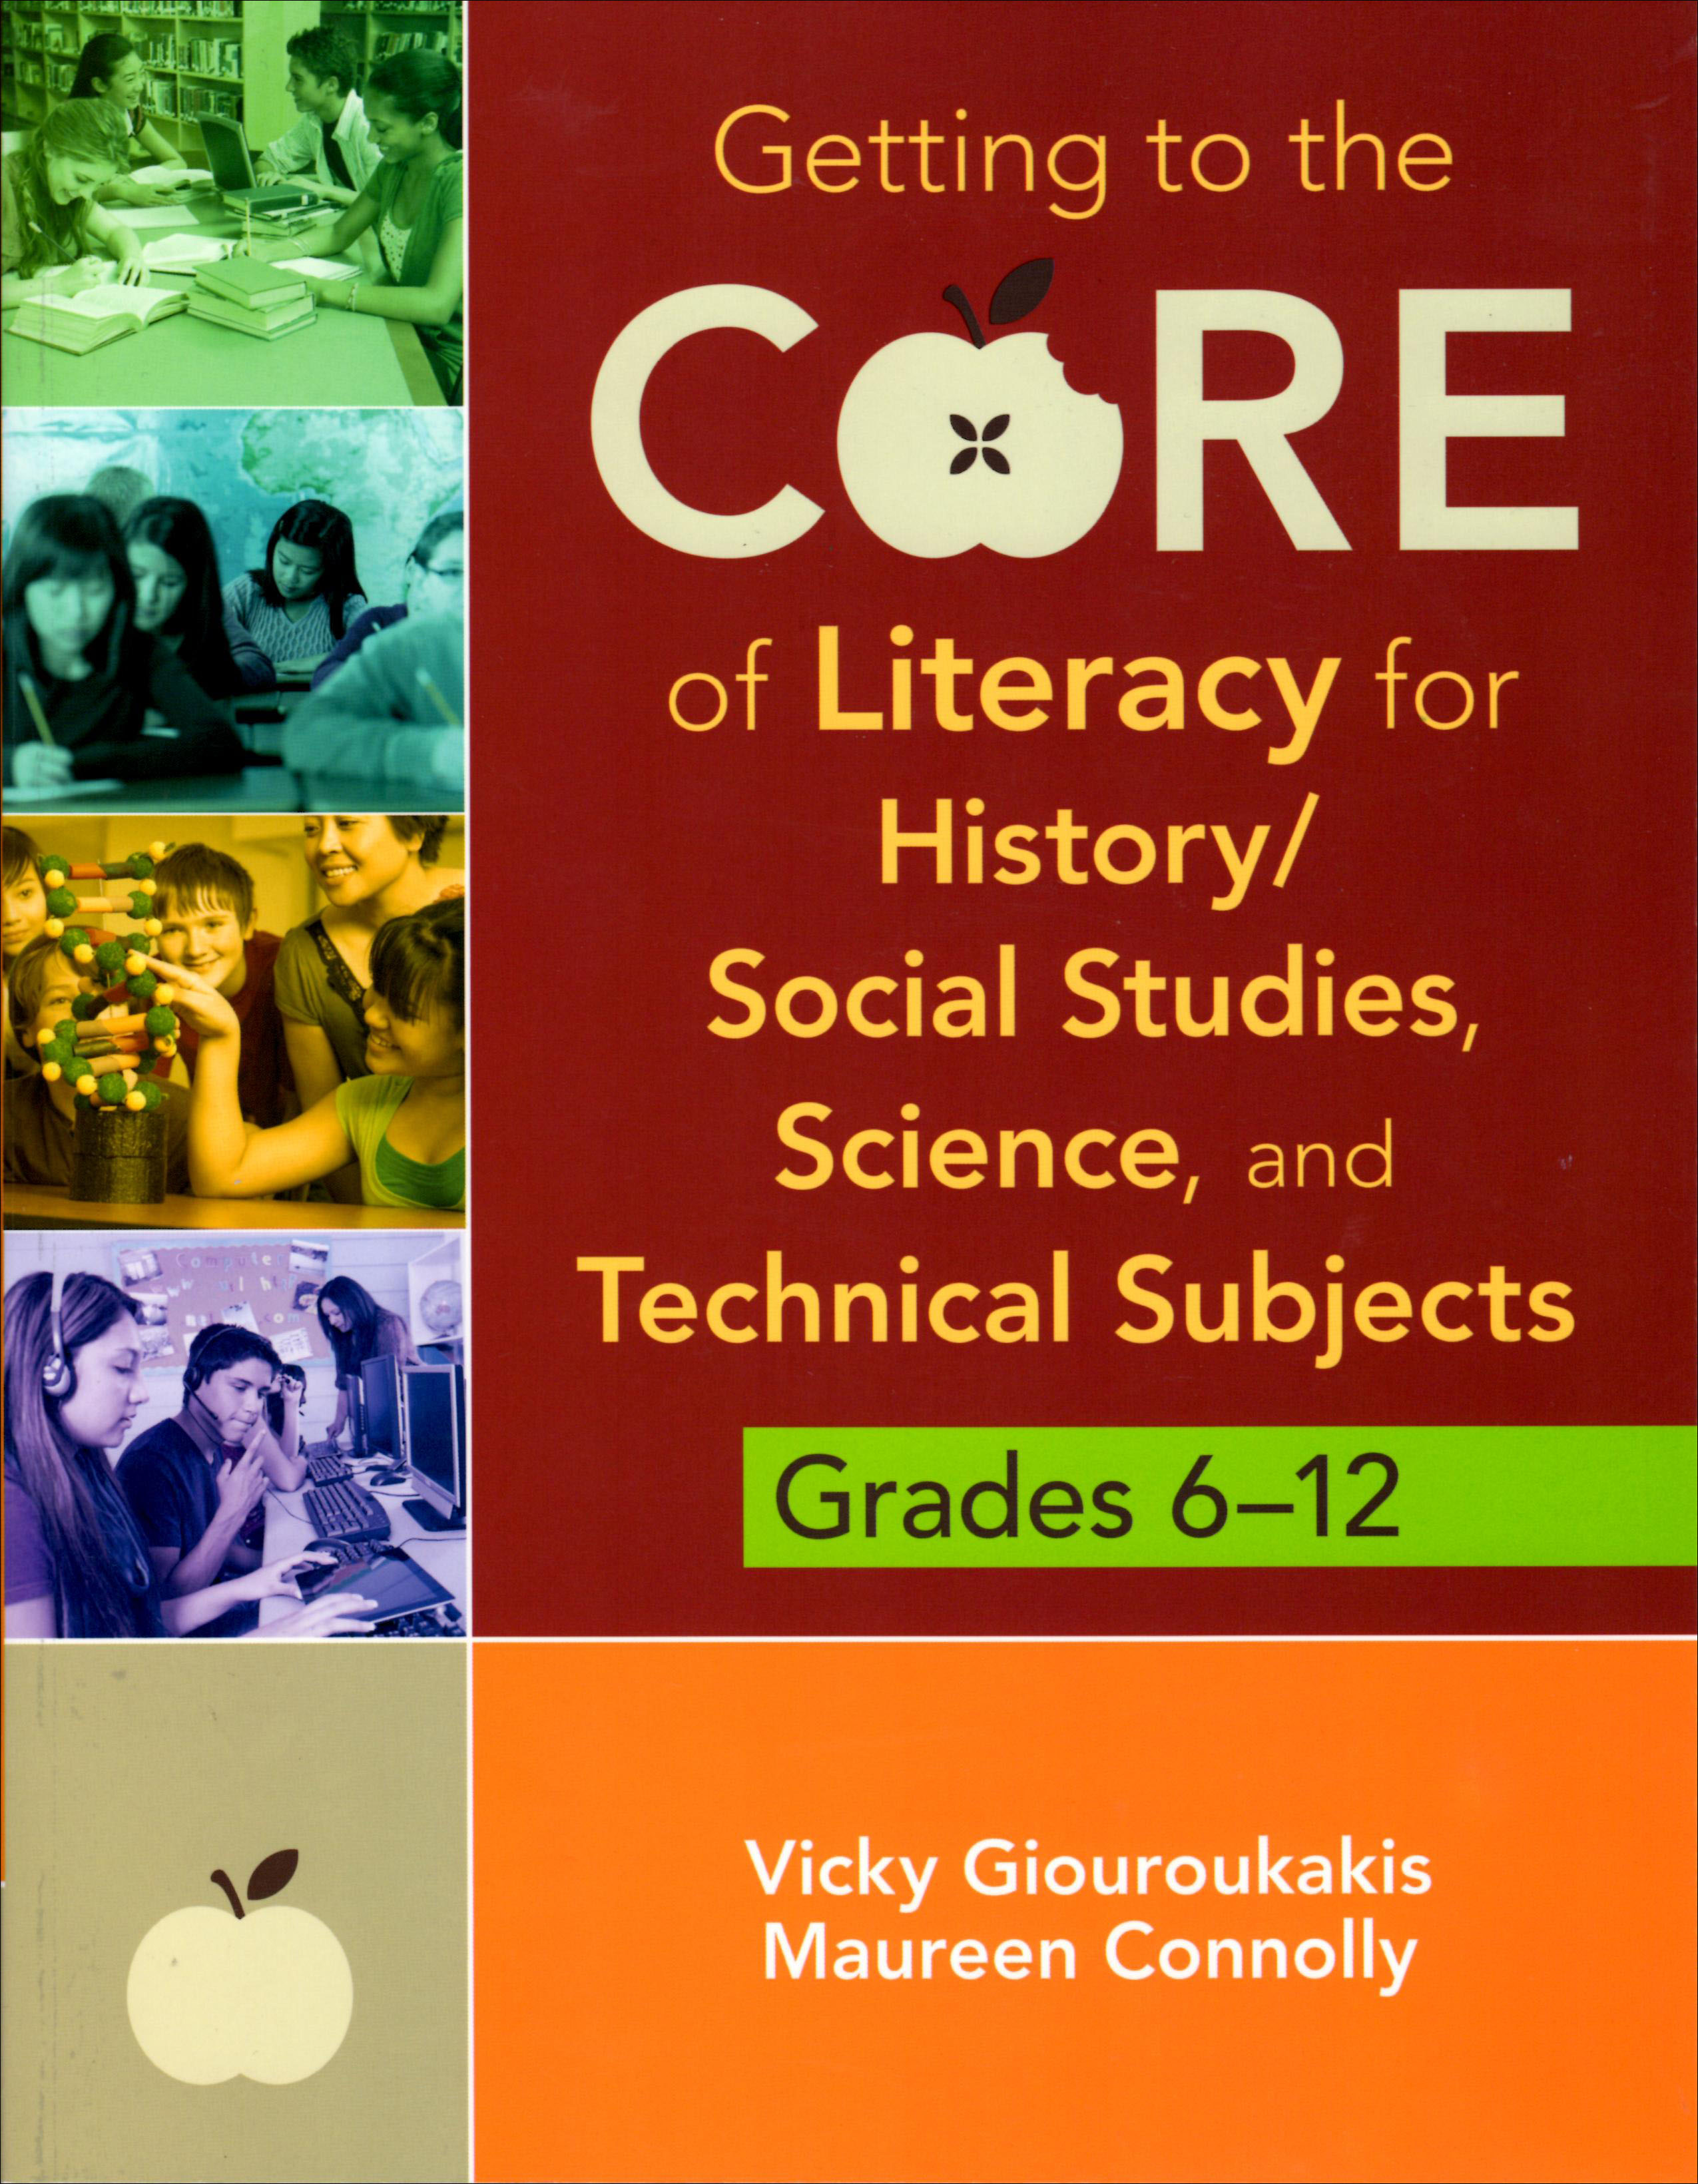 Getting to the Core of Literacy for History/Social Studies, Science, and Technical Subjects ~ Grades 6-12